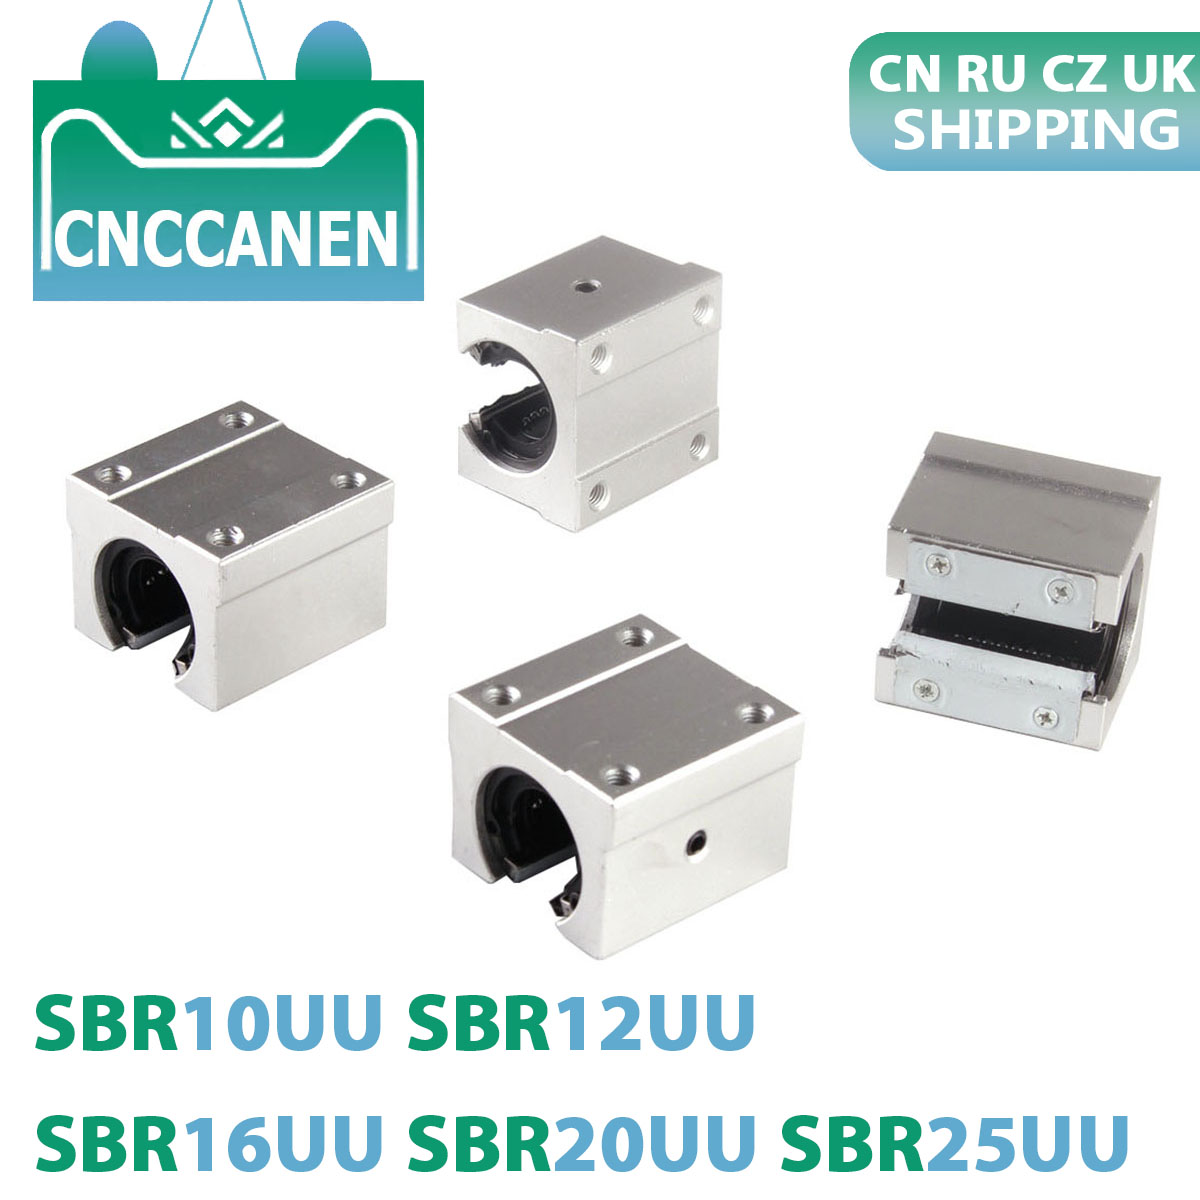 4PCS/LOT SBR10UU SBR12UU SBR16UU SBR20UU SBR25UU 12mm 16mm 20mm Linear Ball Bearing Block For CNC Router SBR Linear Guide Rail